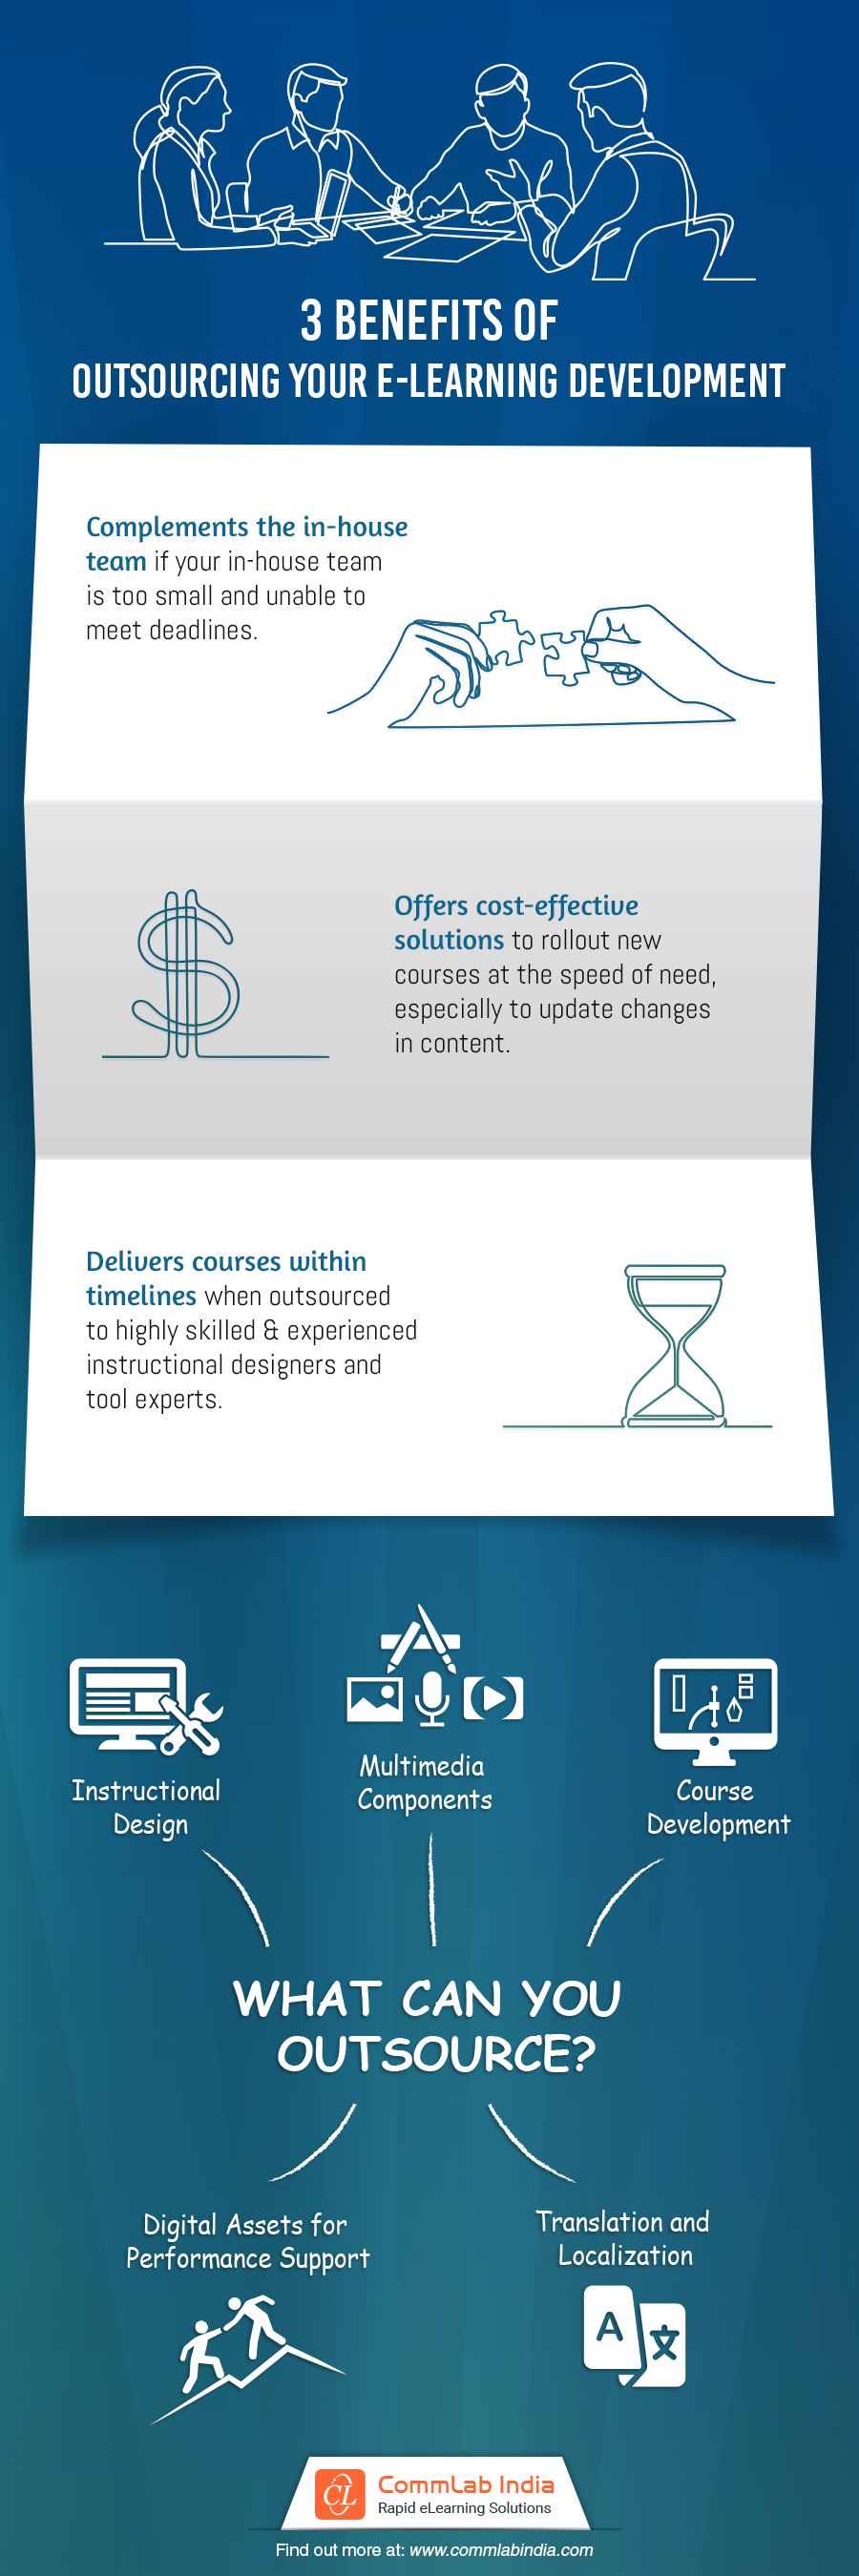 3 Benefits of Outsourcing Your E-learning Development [Infographic]